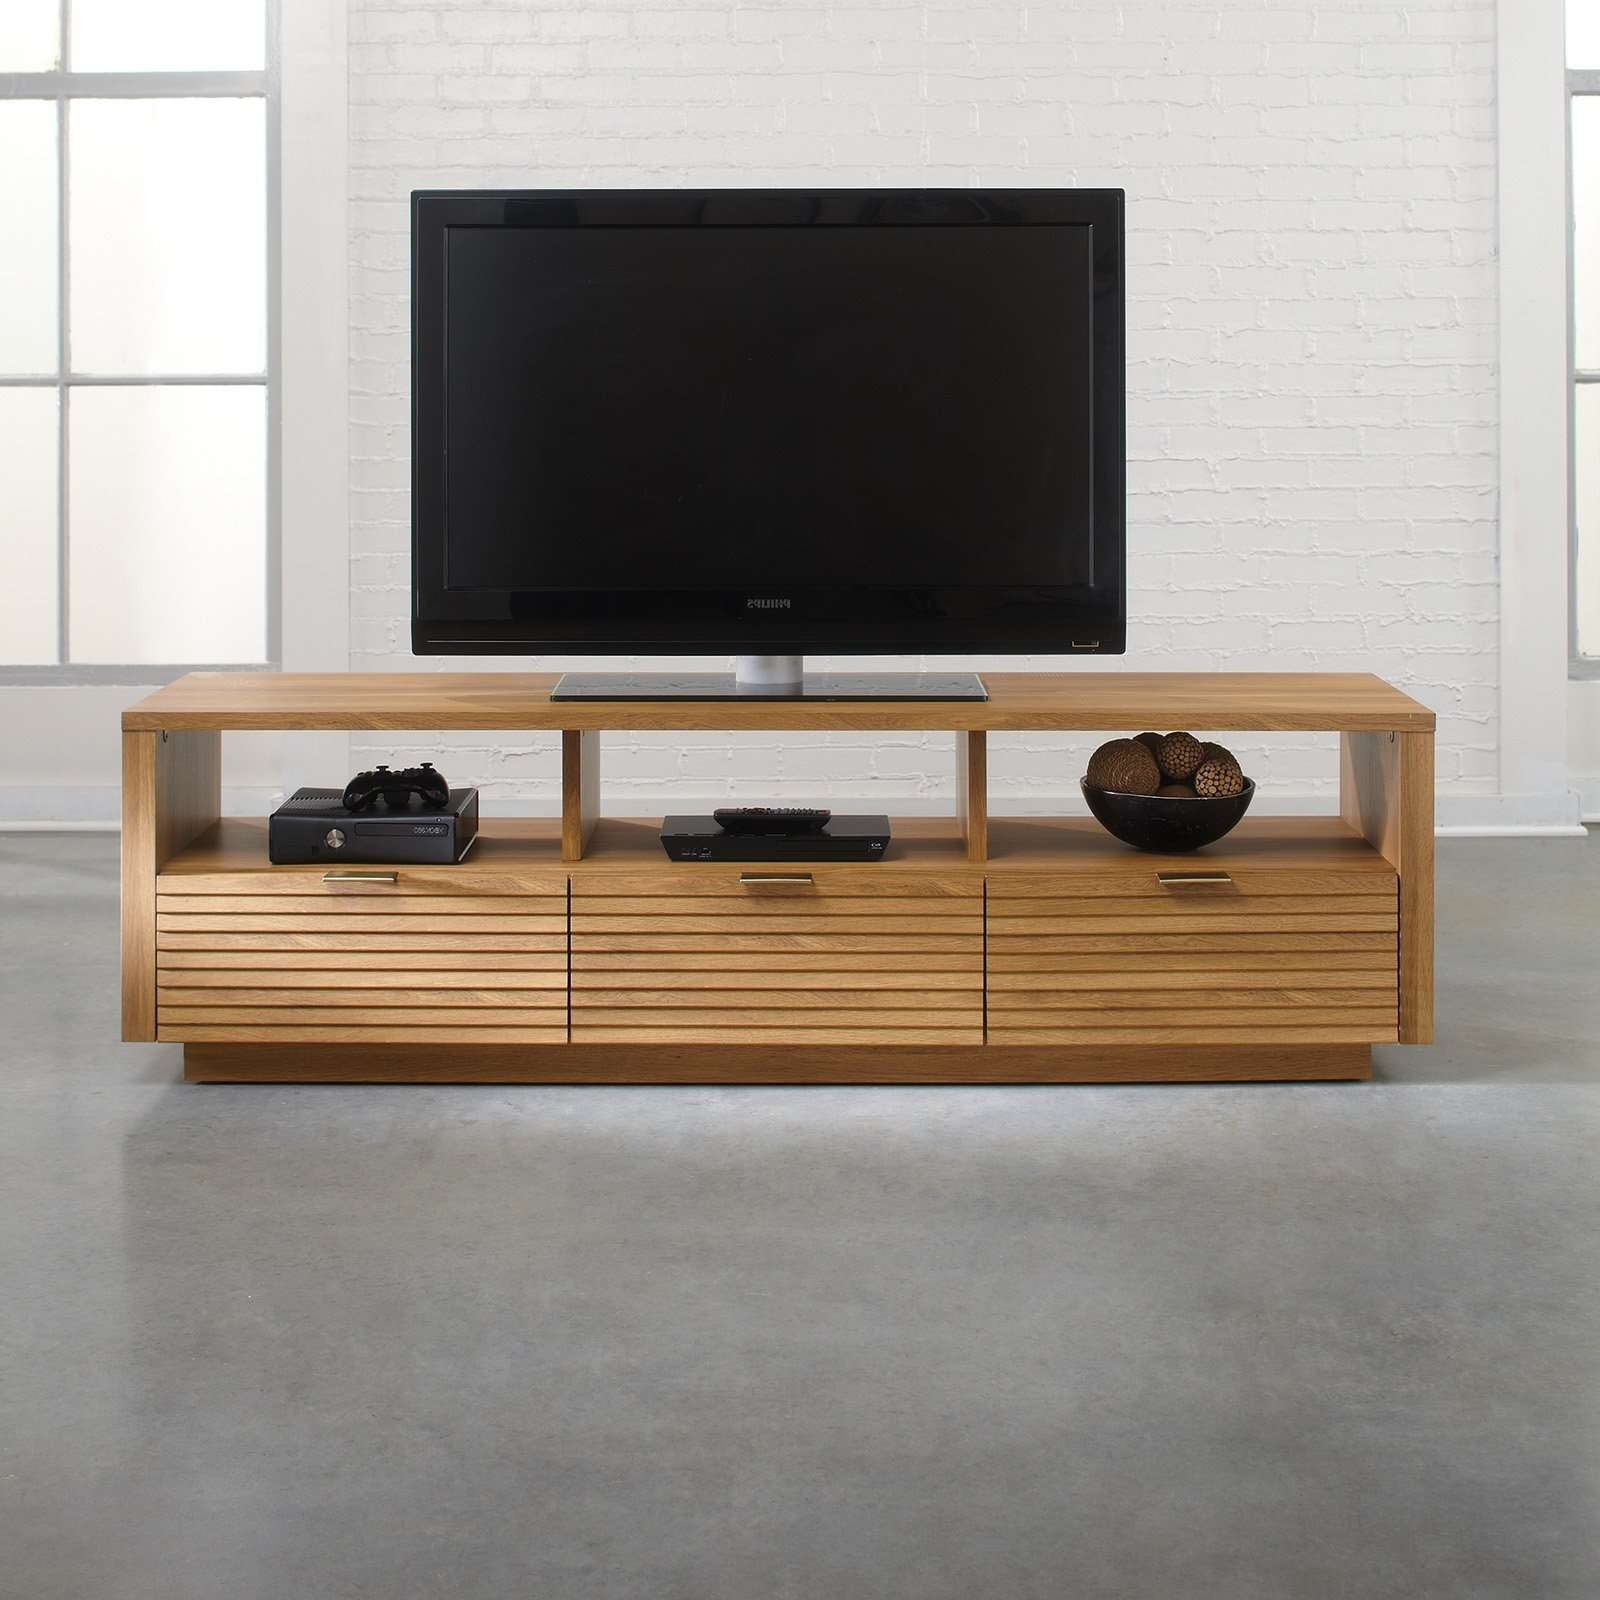 Sauder Soft Modern Entertainment Credenza – Pale Oak | Hayneedle Within Contemporary Oak Tv Stands (View 8 of 15)